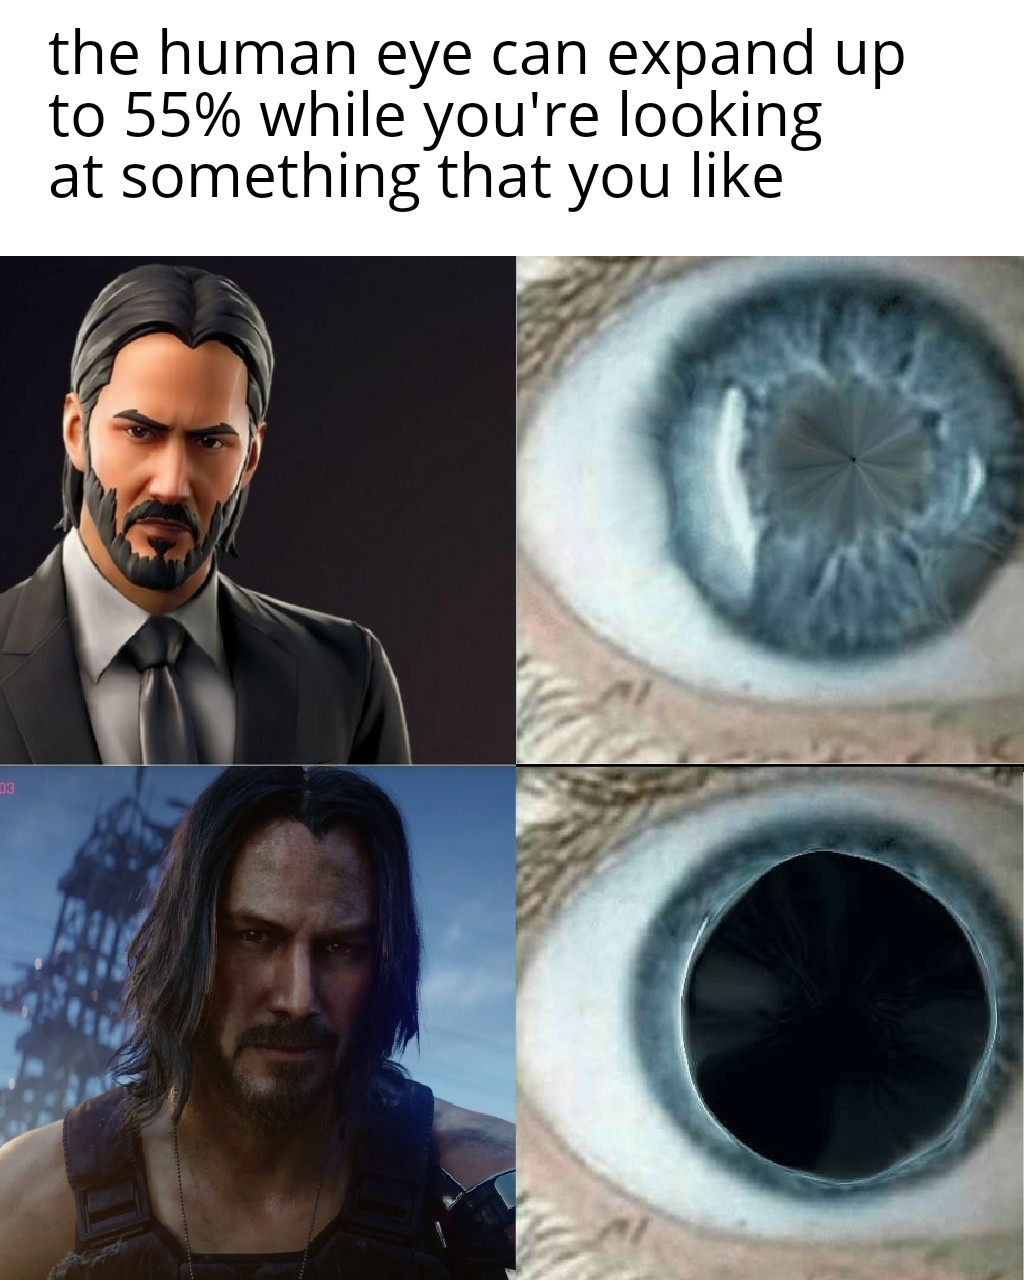 John Wick Is The Best Cyberpunk 2077 Keanu Reeves We Have A City To Burn Know Your Meme